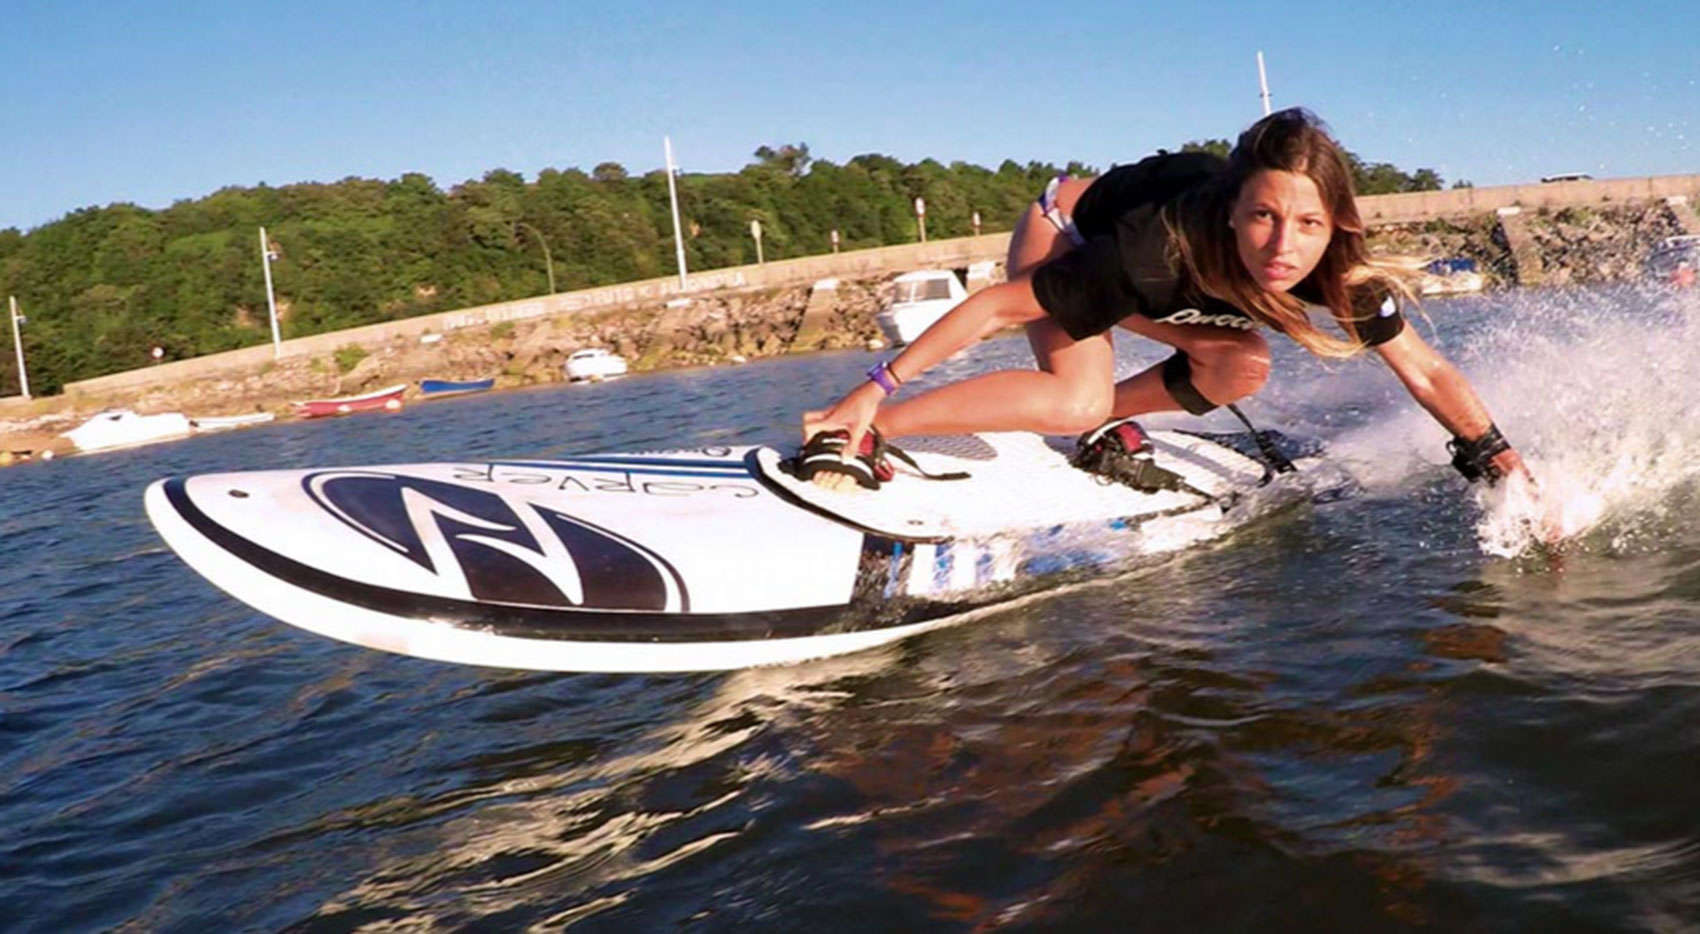 The Carver, by Onean, lets you surf on any body of water.